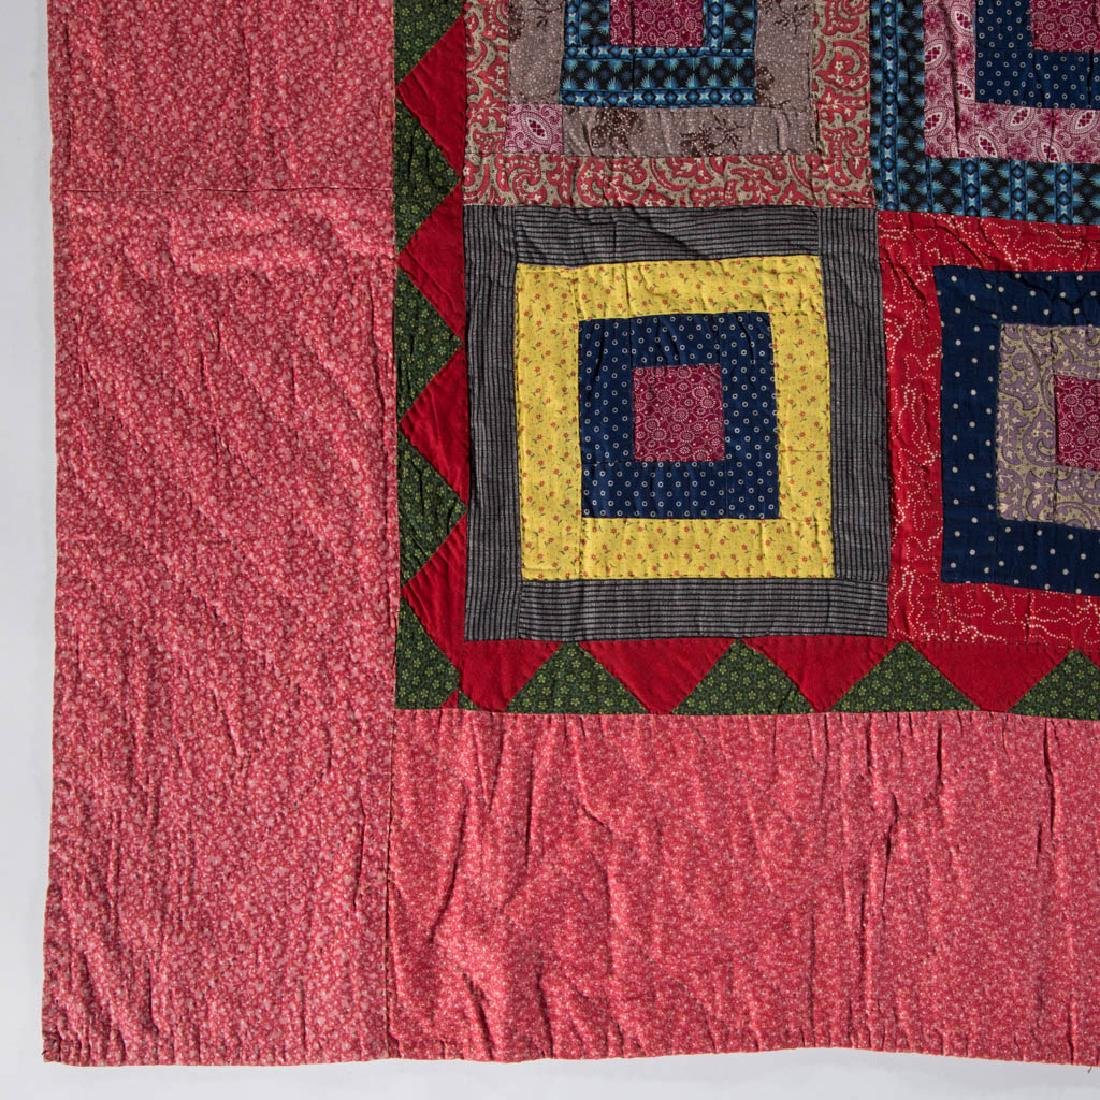 PENNSYLVANIA LOG CABIN PIECED QUILT - 2